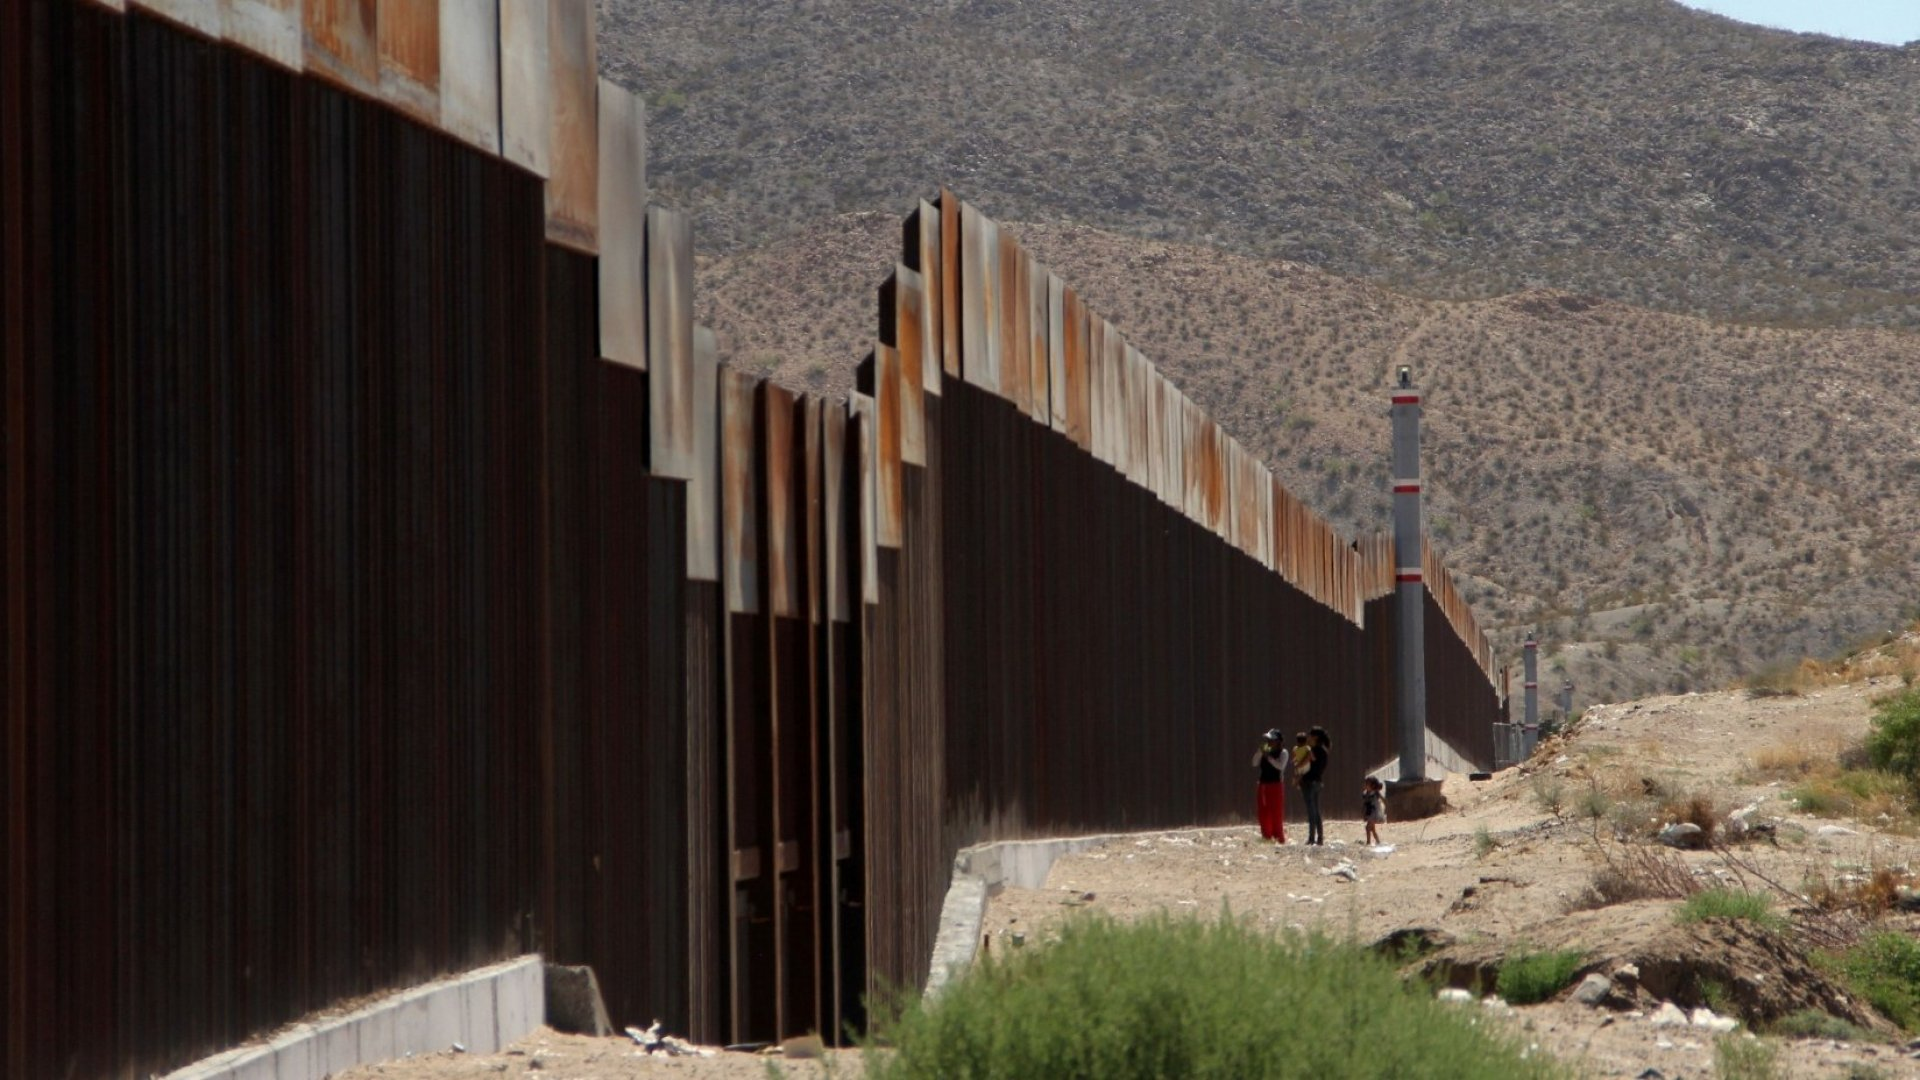 Cards Against Humanity Sells 'America-Saving' Surprises That Hinder Trump's Border Wall